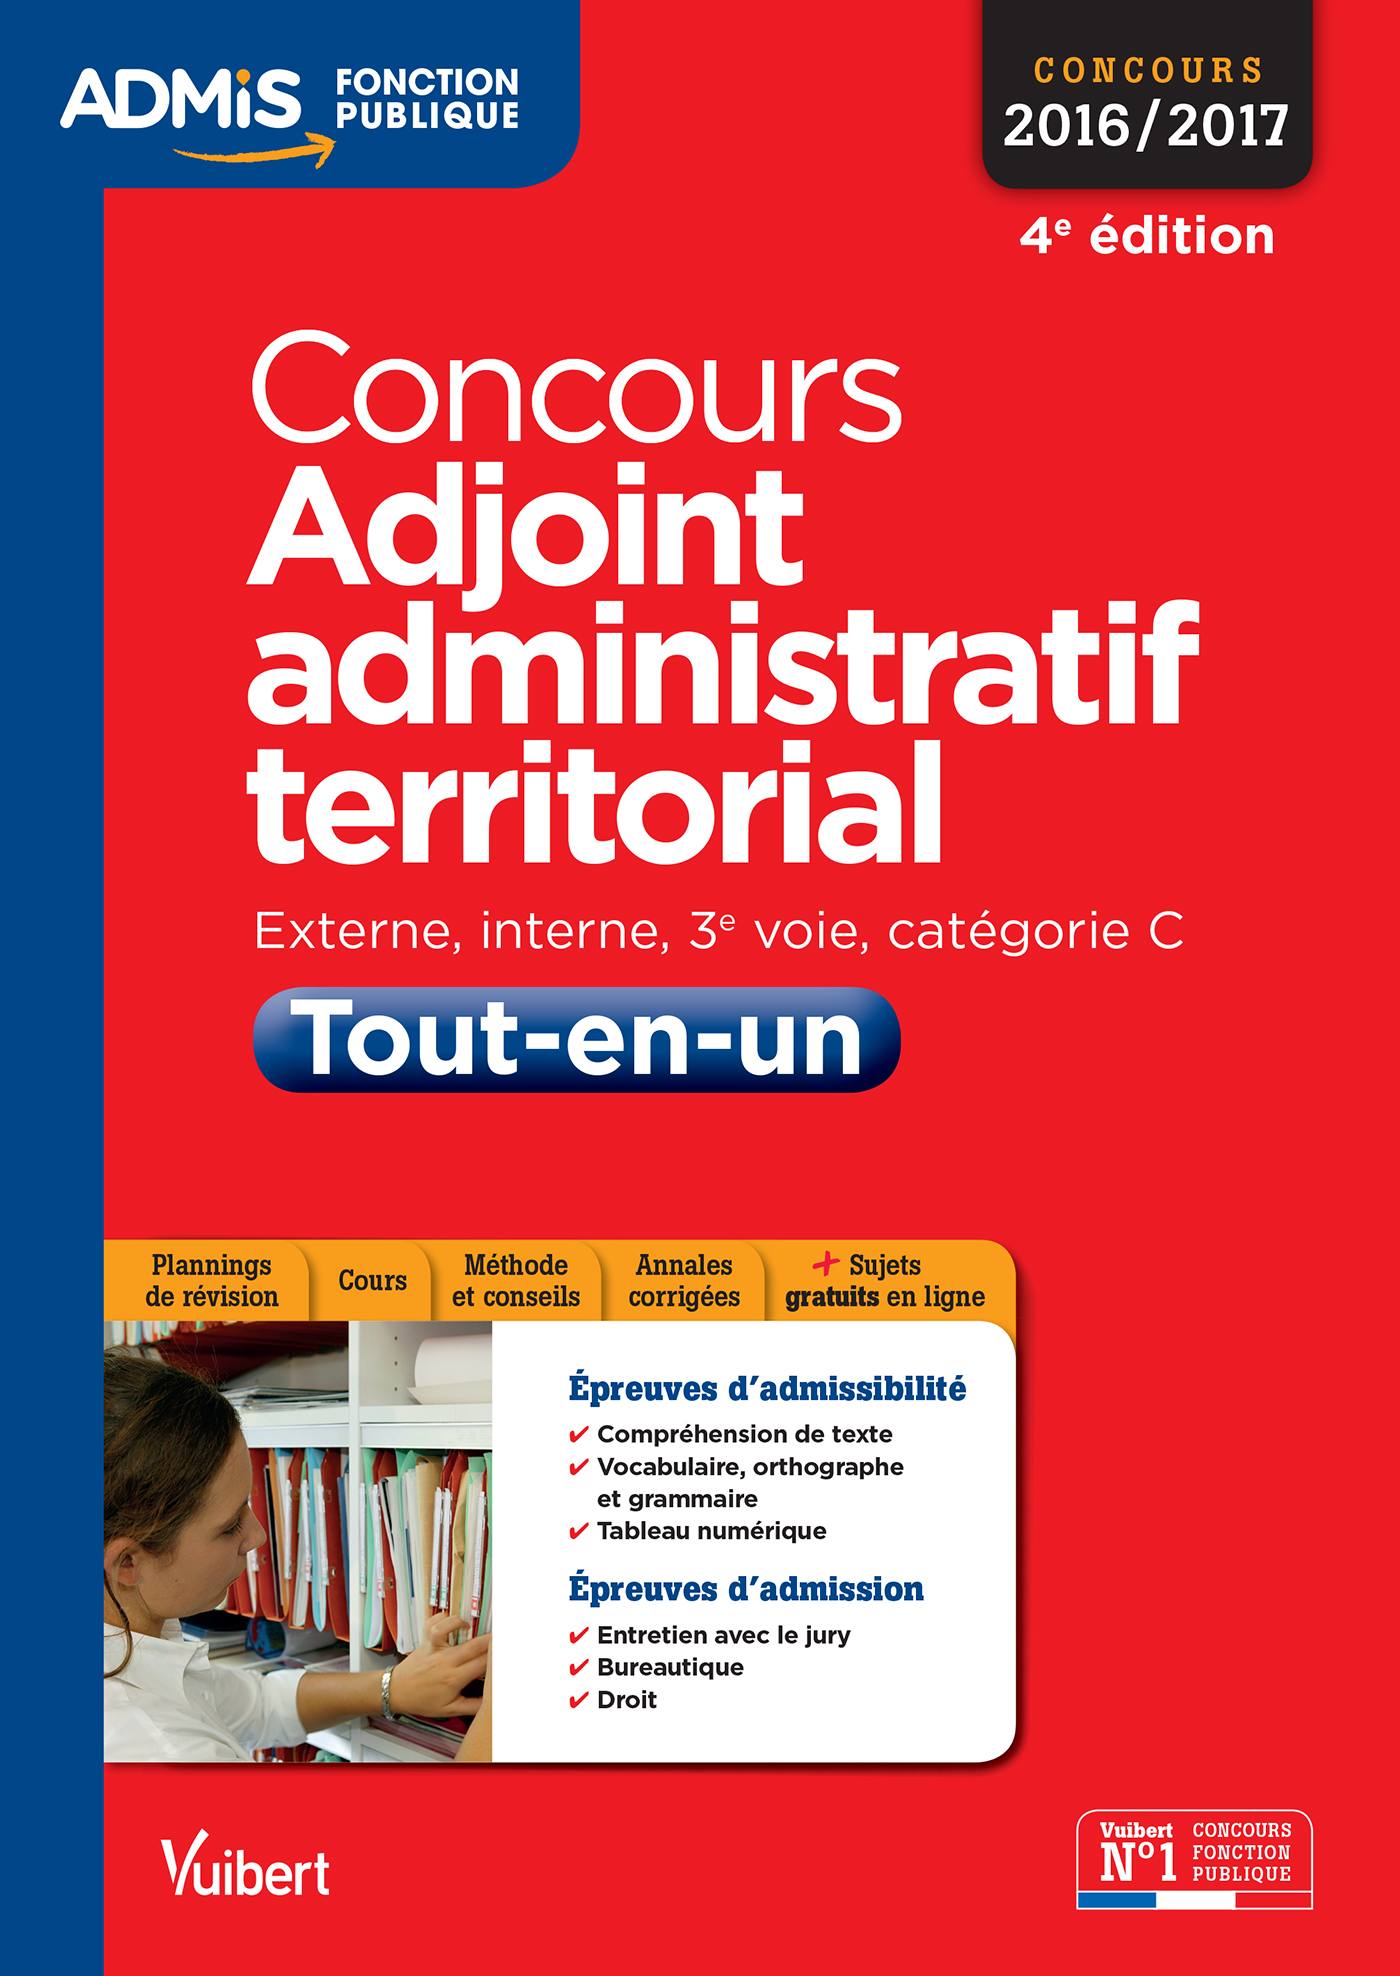 Concours Adjoint administratif territorial